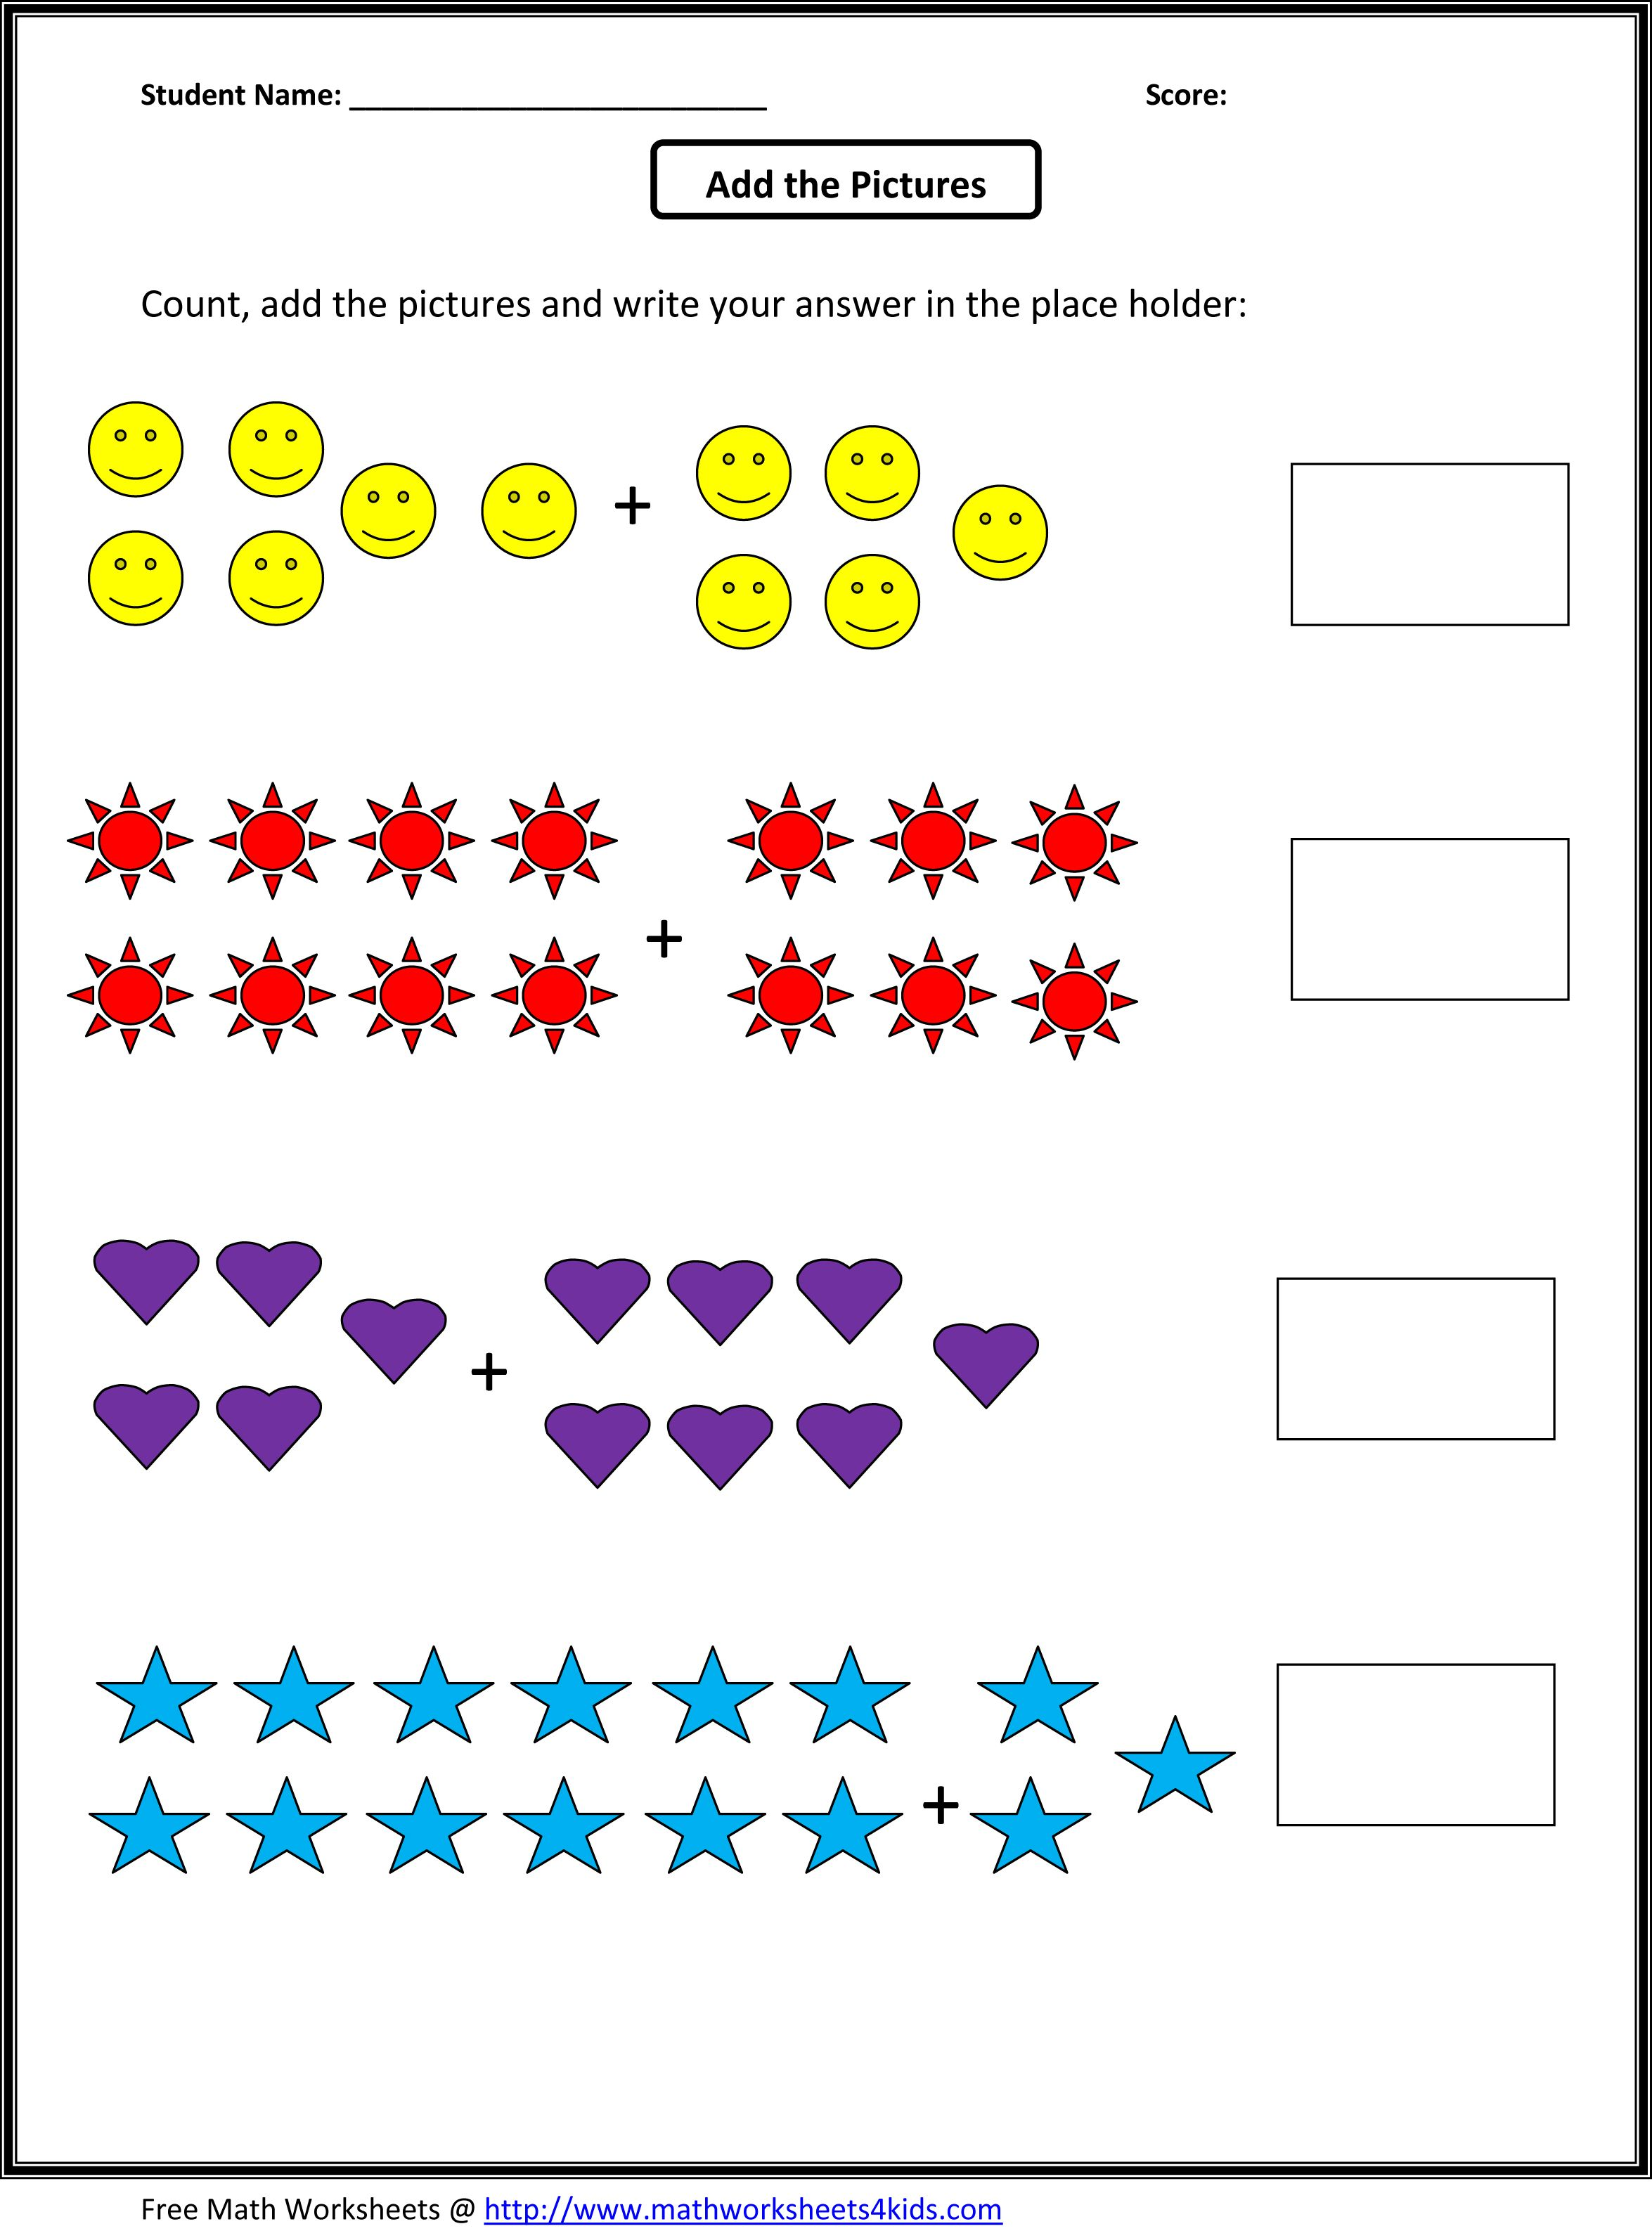 Uncategorized Math Worksheets For Grade 1 Addition And Subtraction grade 1 addition math worksheets first worksheets